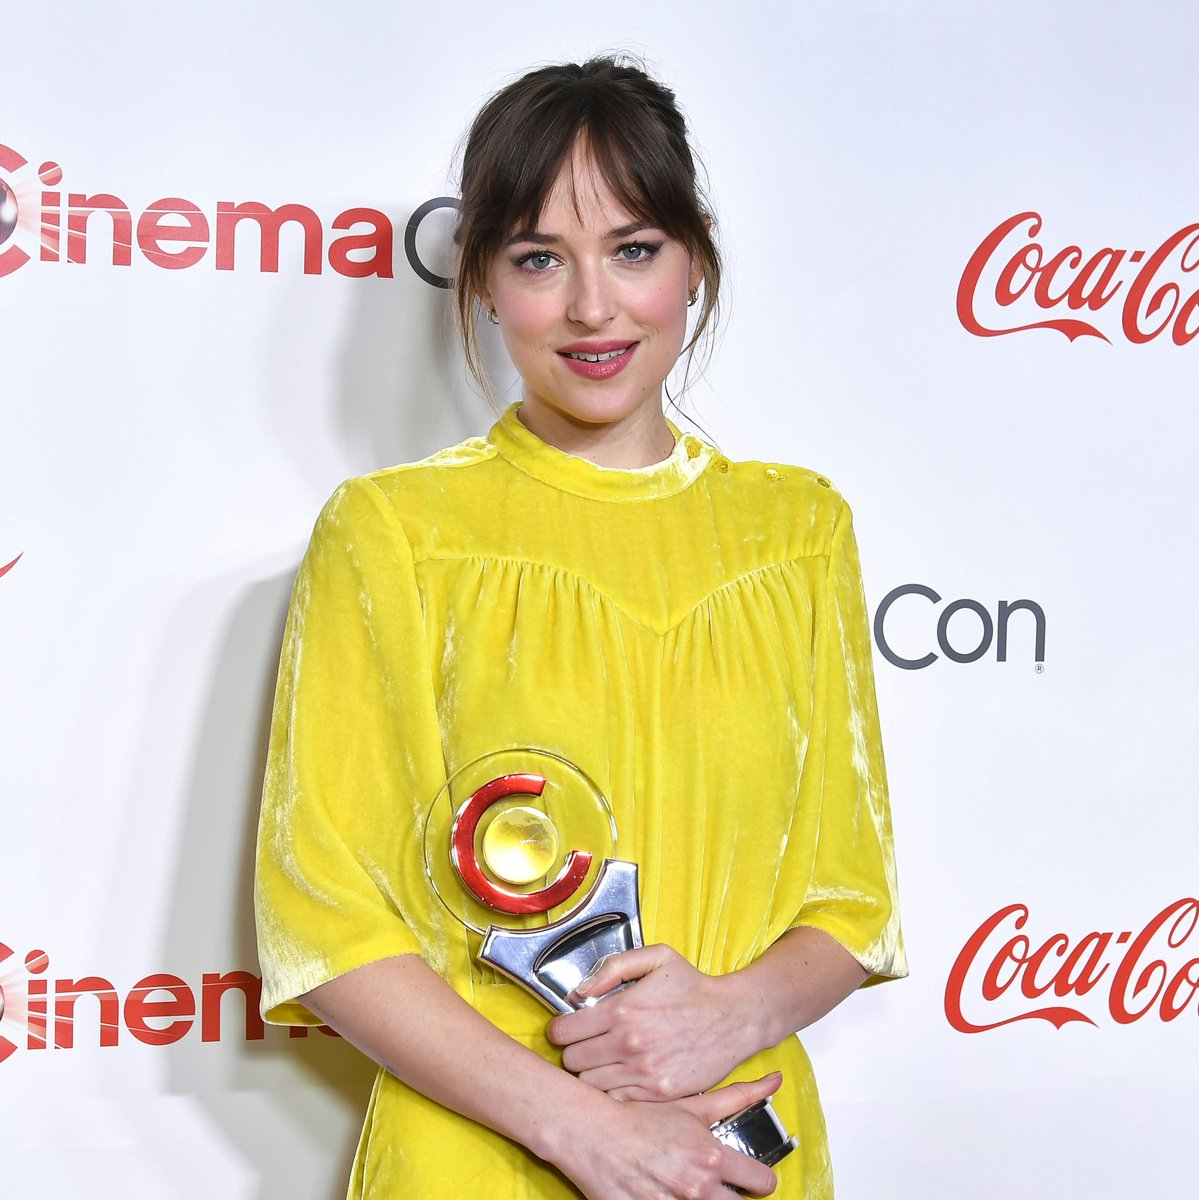 """""""Cinema is my passion. It's my heart and soul and I'm also really lucky and grateful to call it my job."""" #DakotaJohnson <br>http://pic.twitter.com/RA5JrkZfO2"""